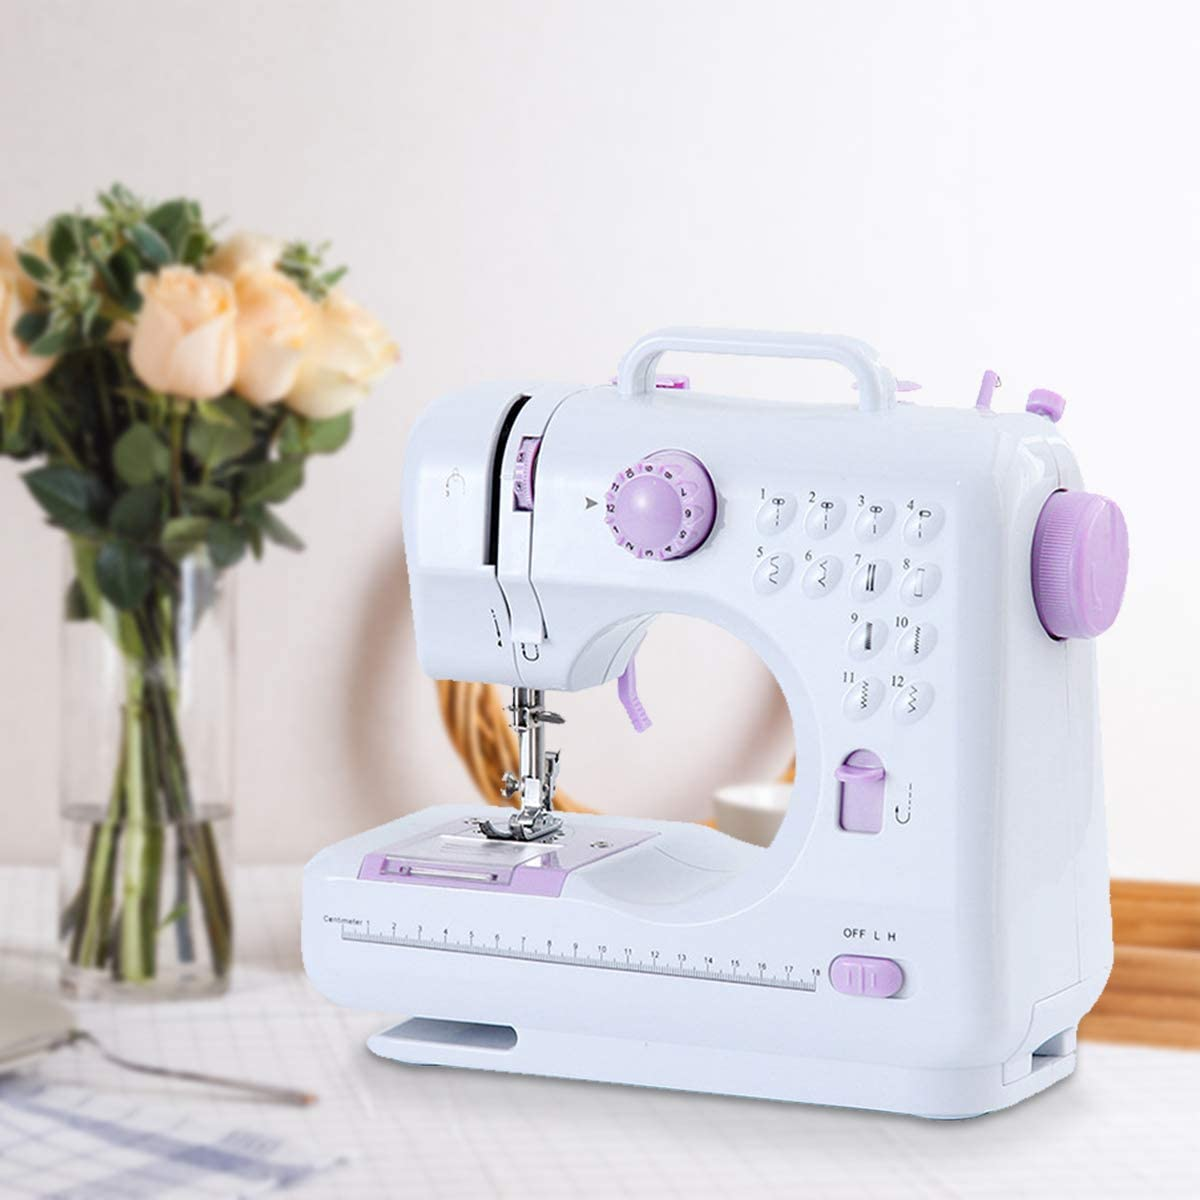 Free-Arm Crafting Mending Beginner Sewing Machine Tailors Electric Household Sewing Machine with 12 Kinds of Floral Stitch for Home